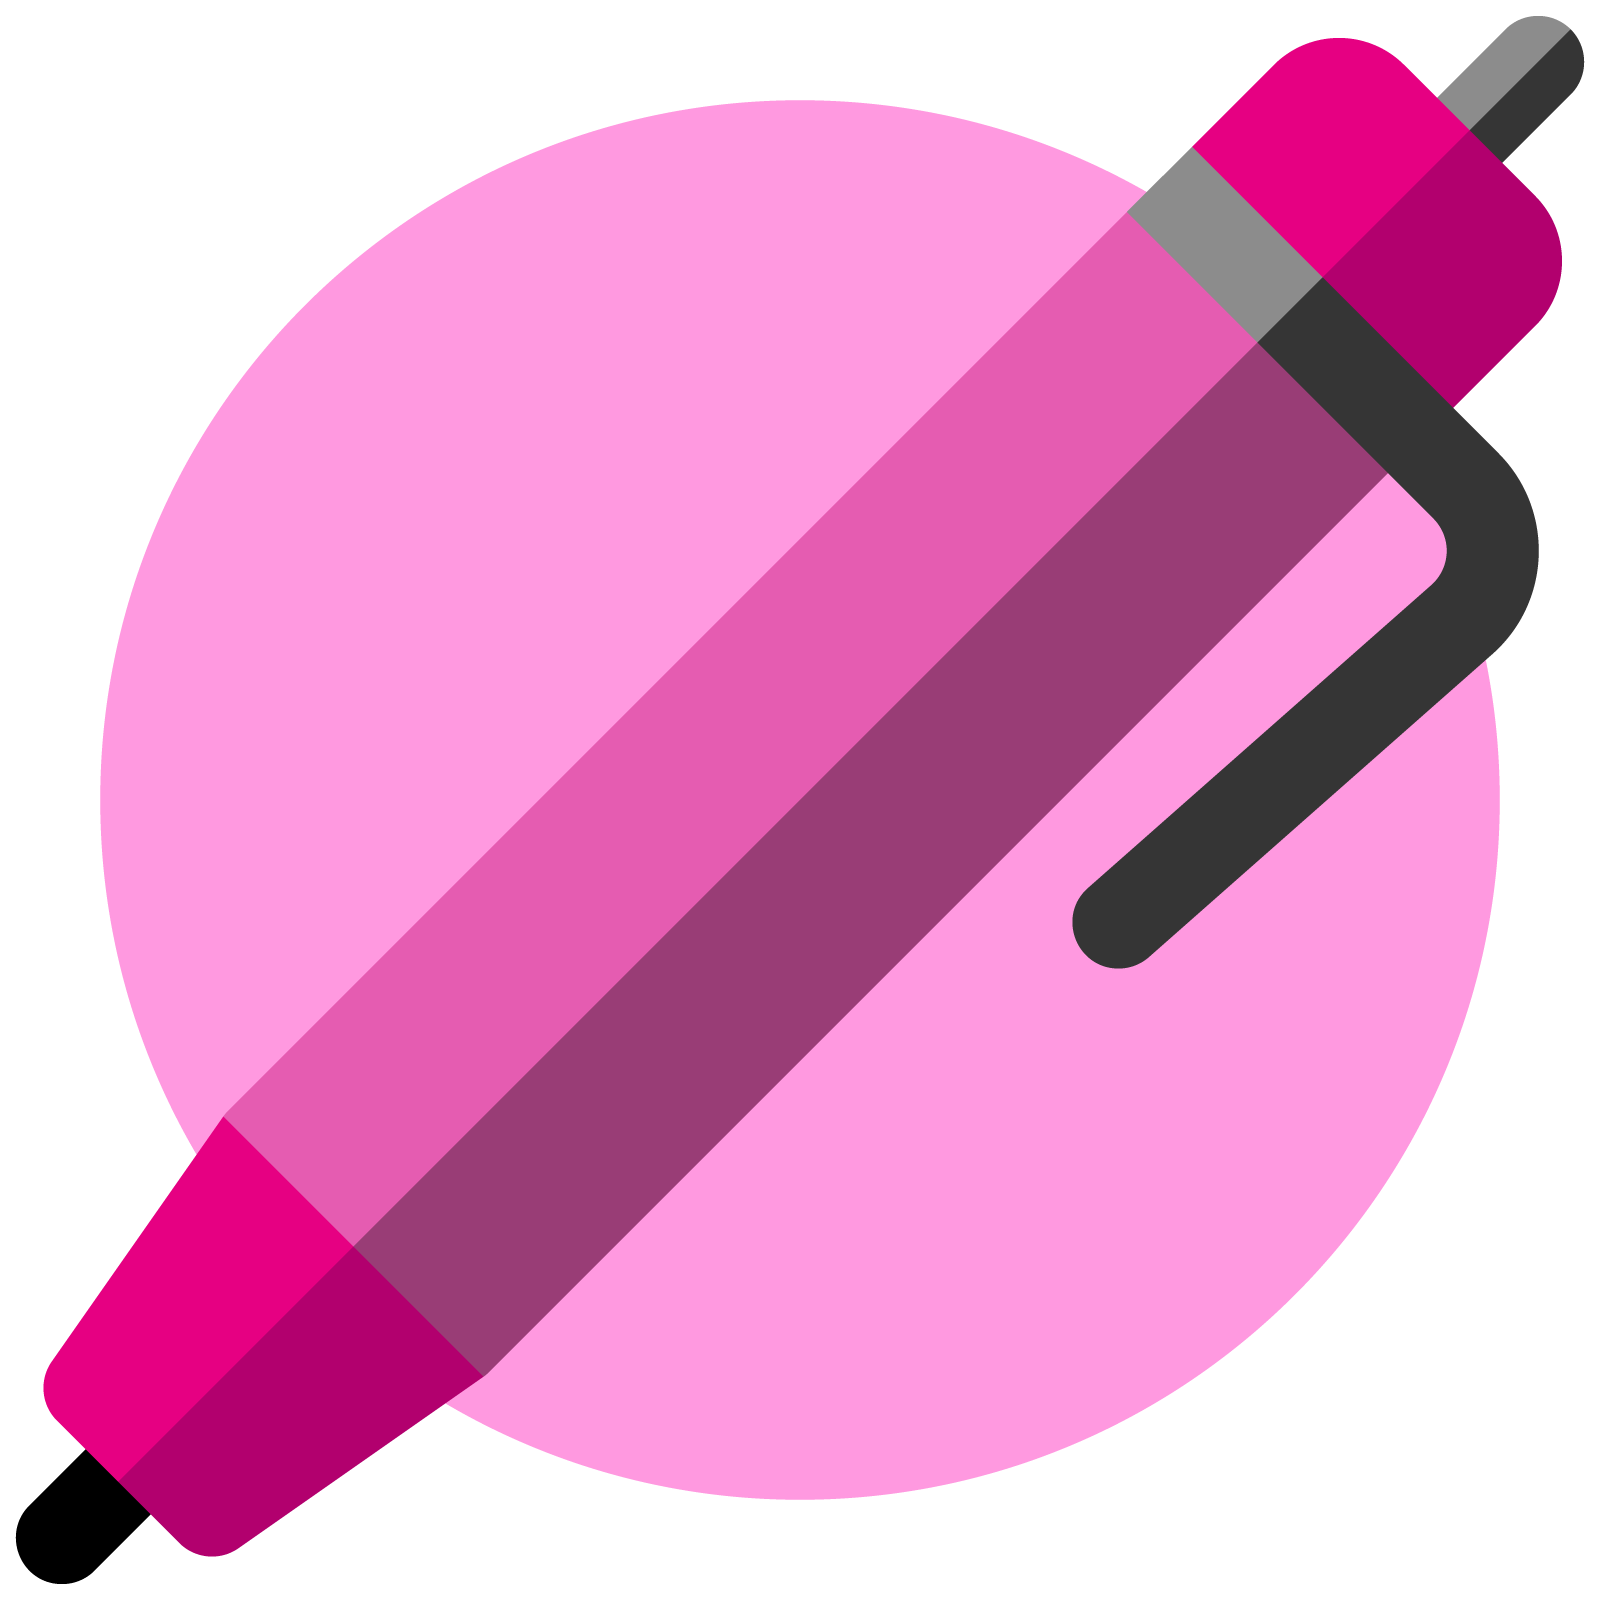 Icon of a pen